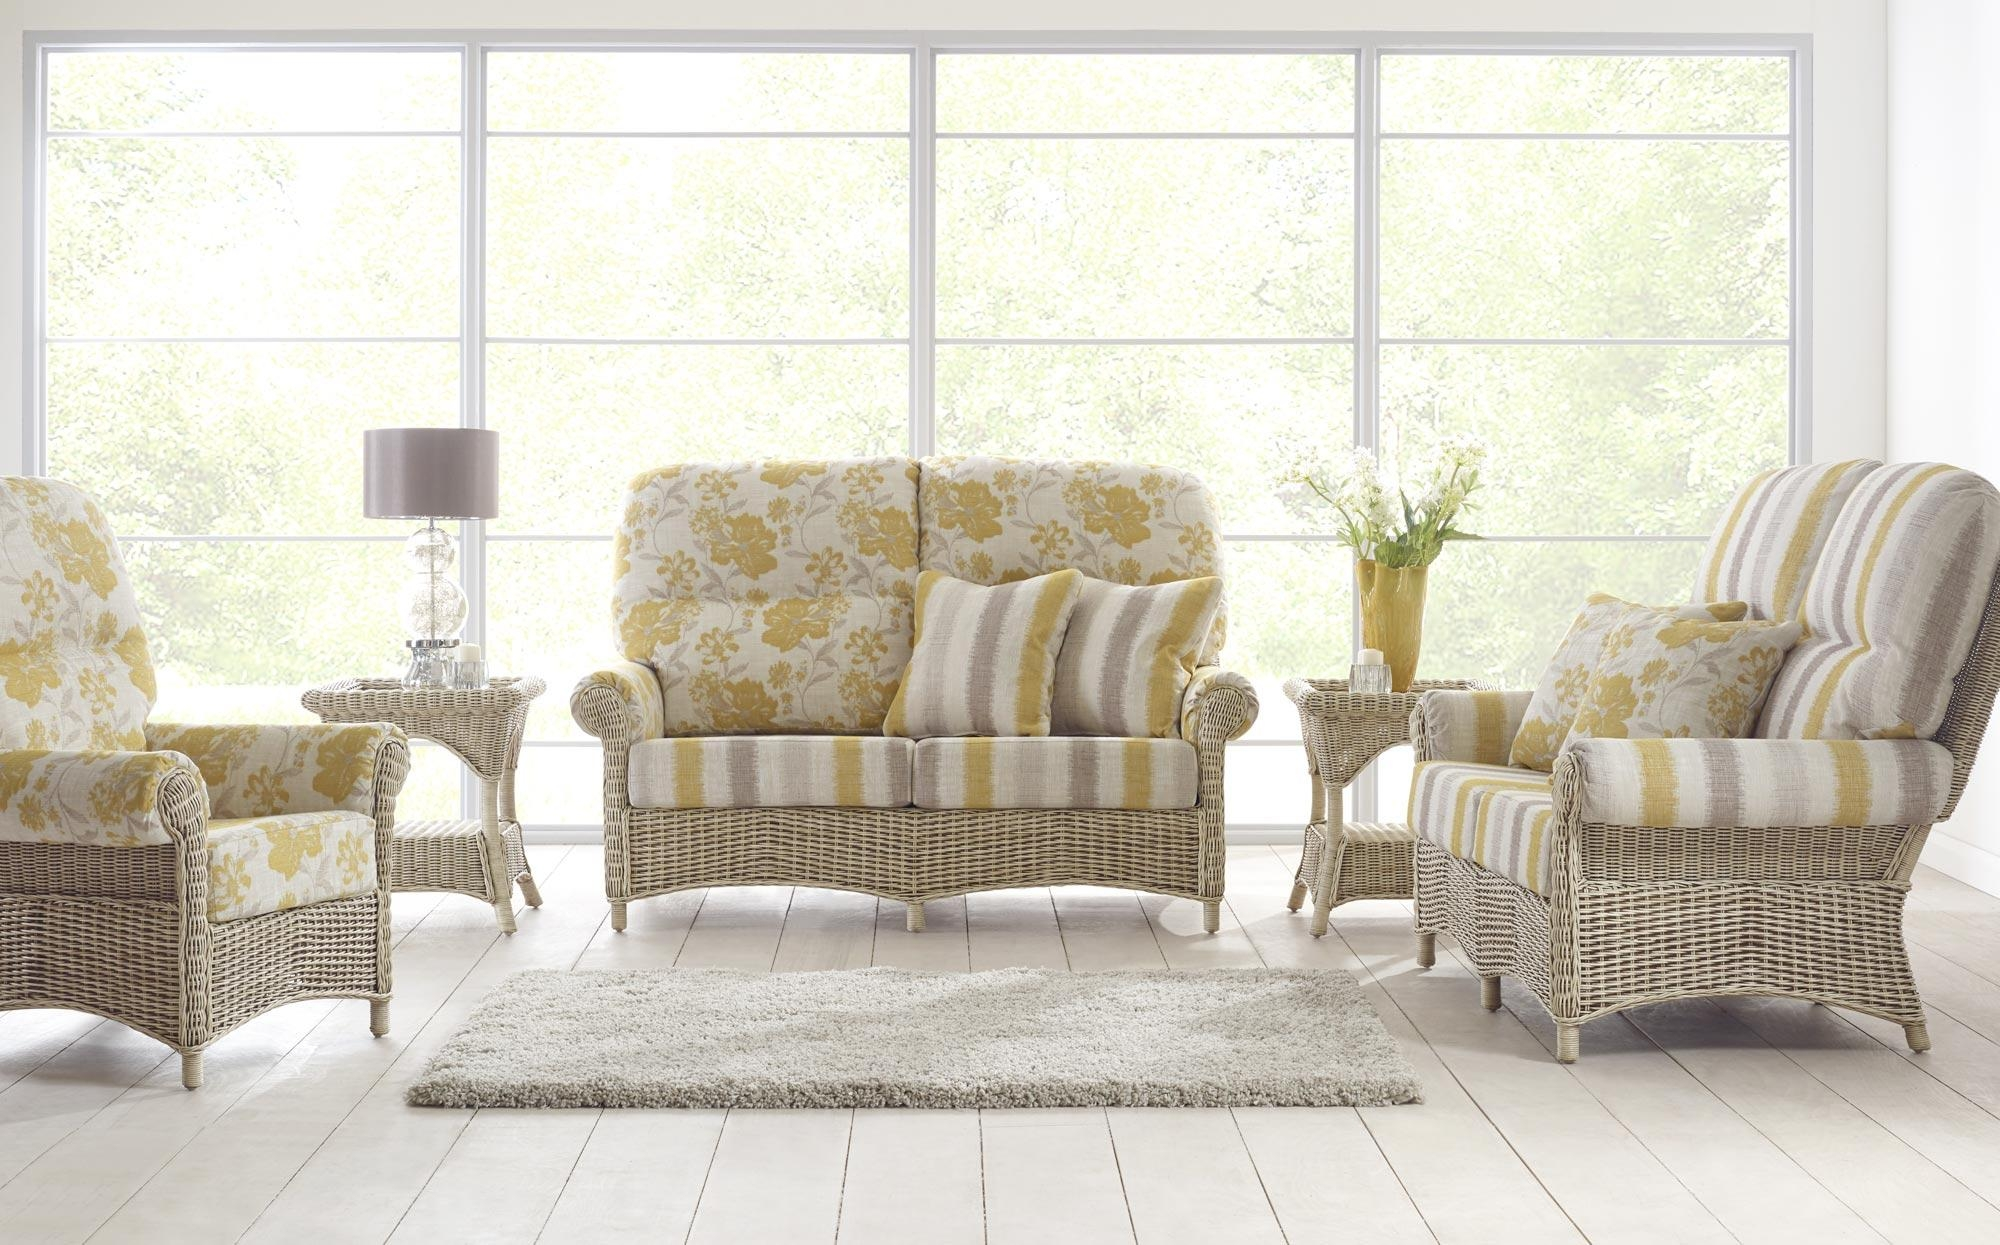 Cane Furniture | Rattan | Wicker |Conservatory Furniture | Vaseys Throughout Cane Sofas (View 11 of 20)